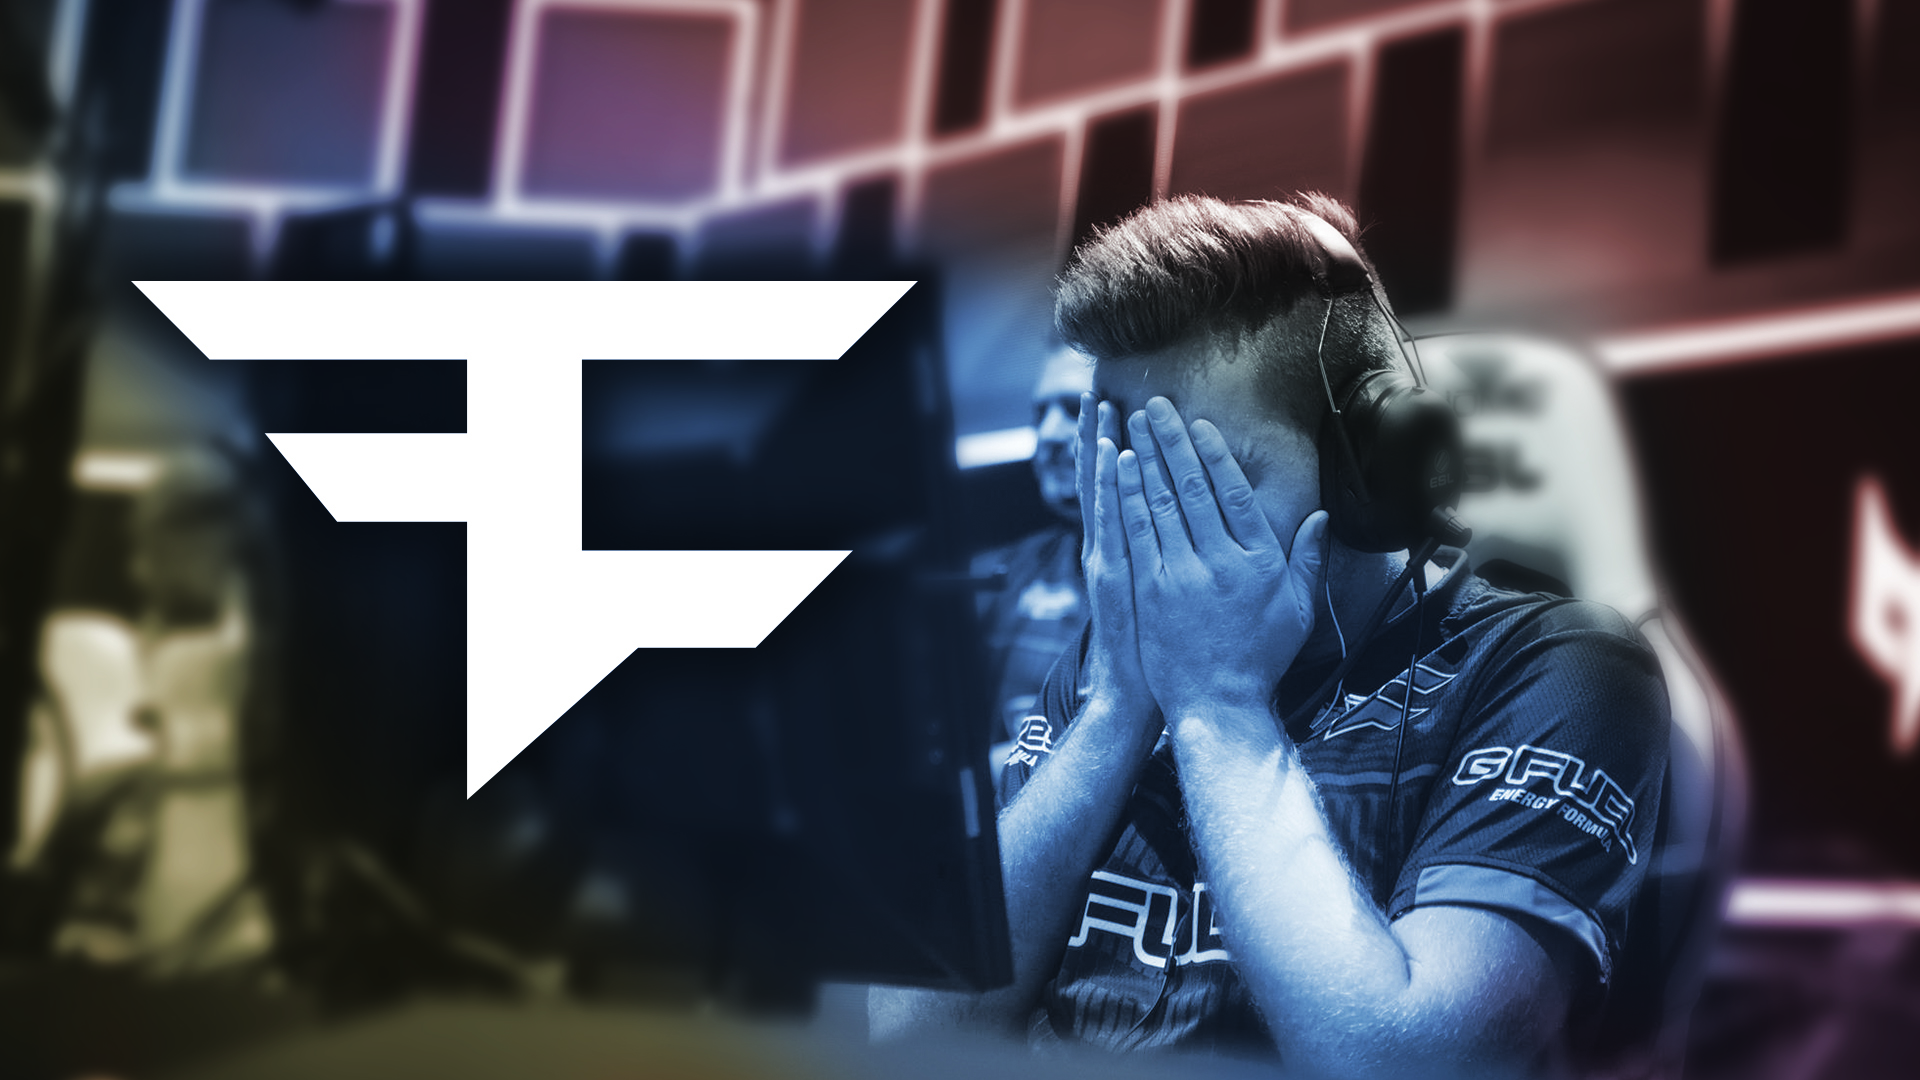 Not the best picture of Niko but here is a FaZe background 1920x1080